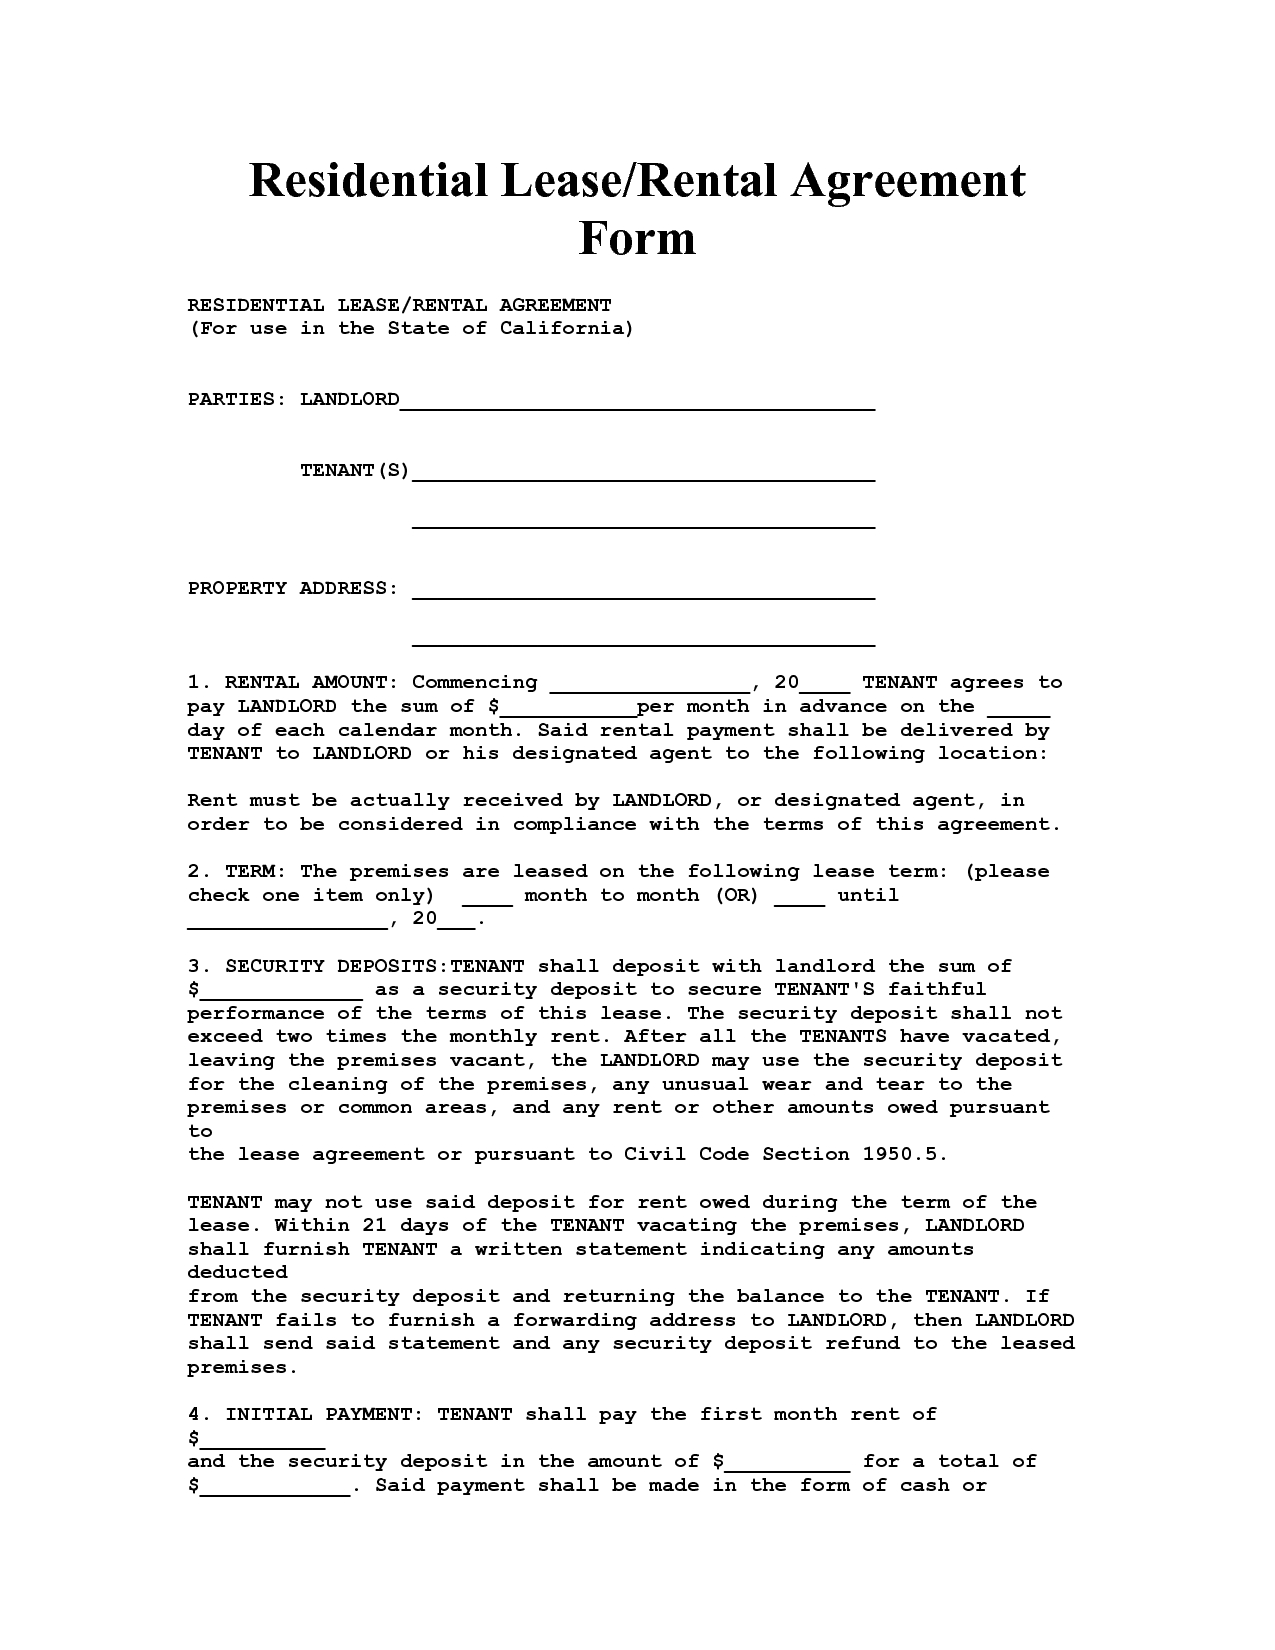 California House Lease Agreement Form | Property Rentals Direct ...